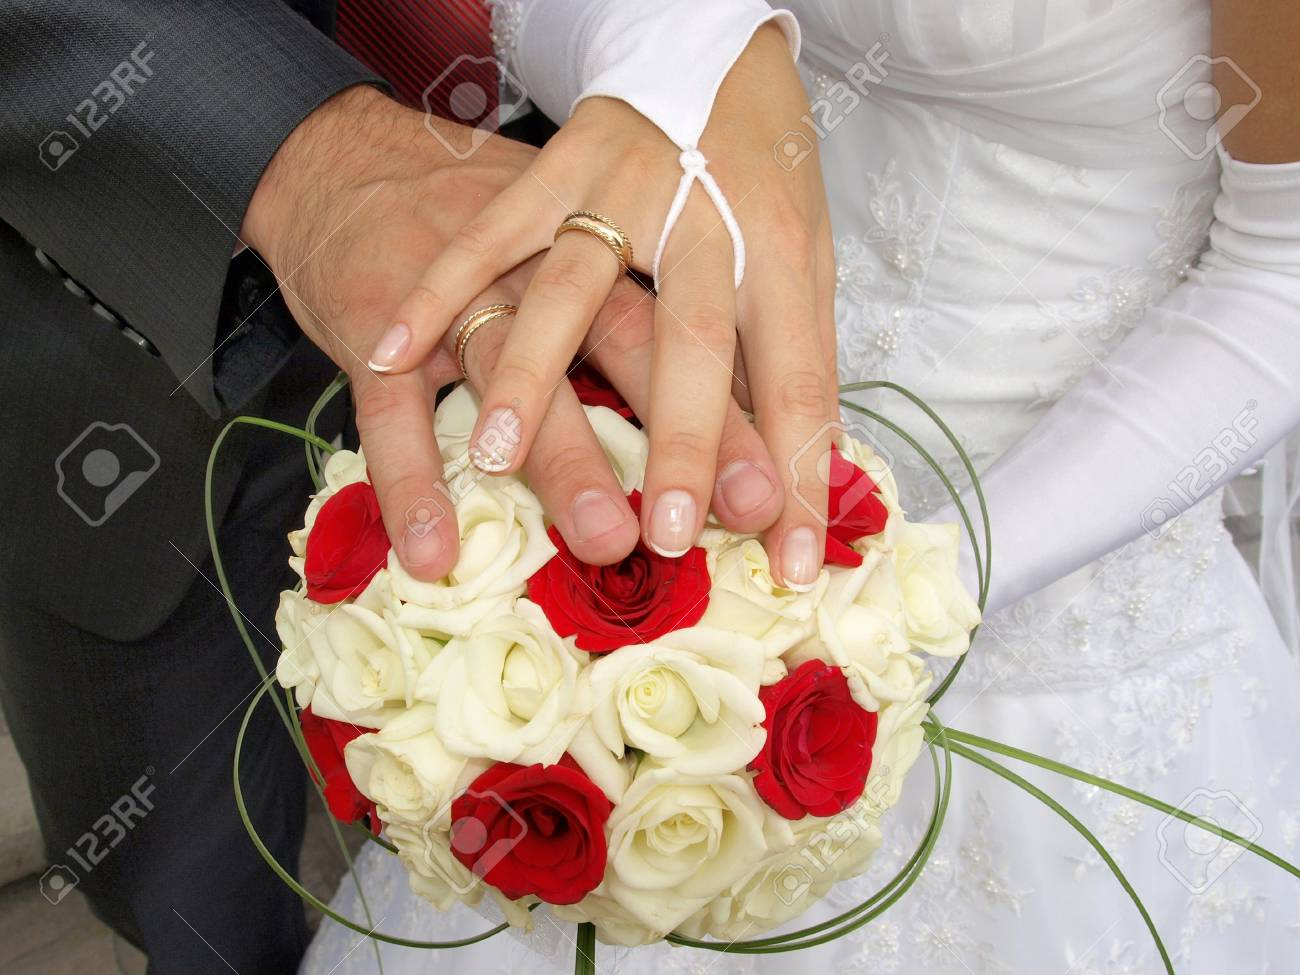 Newly married Stock Photo - 7001759